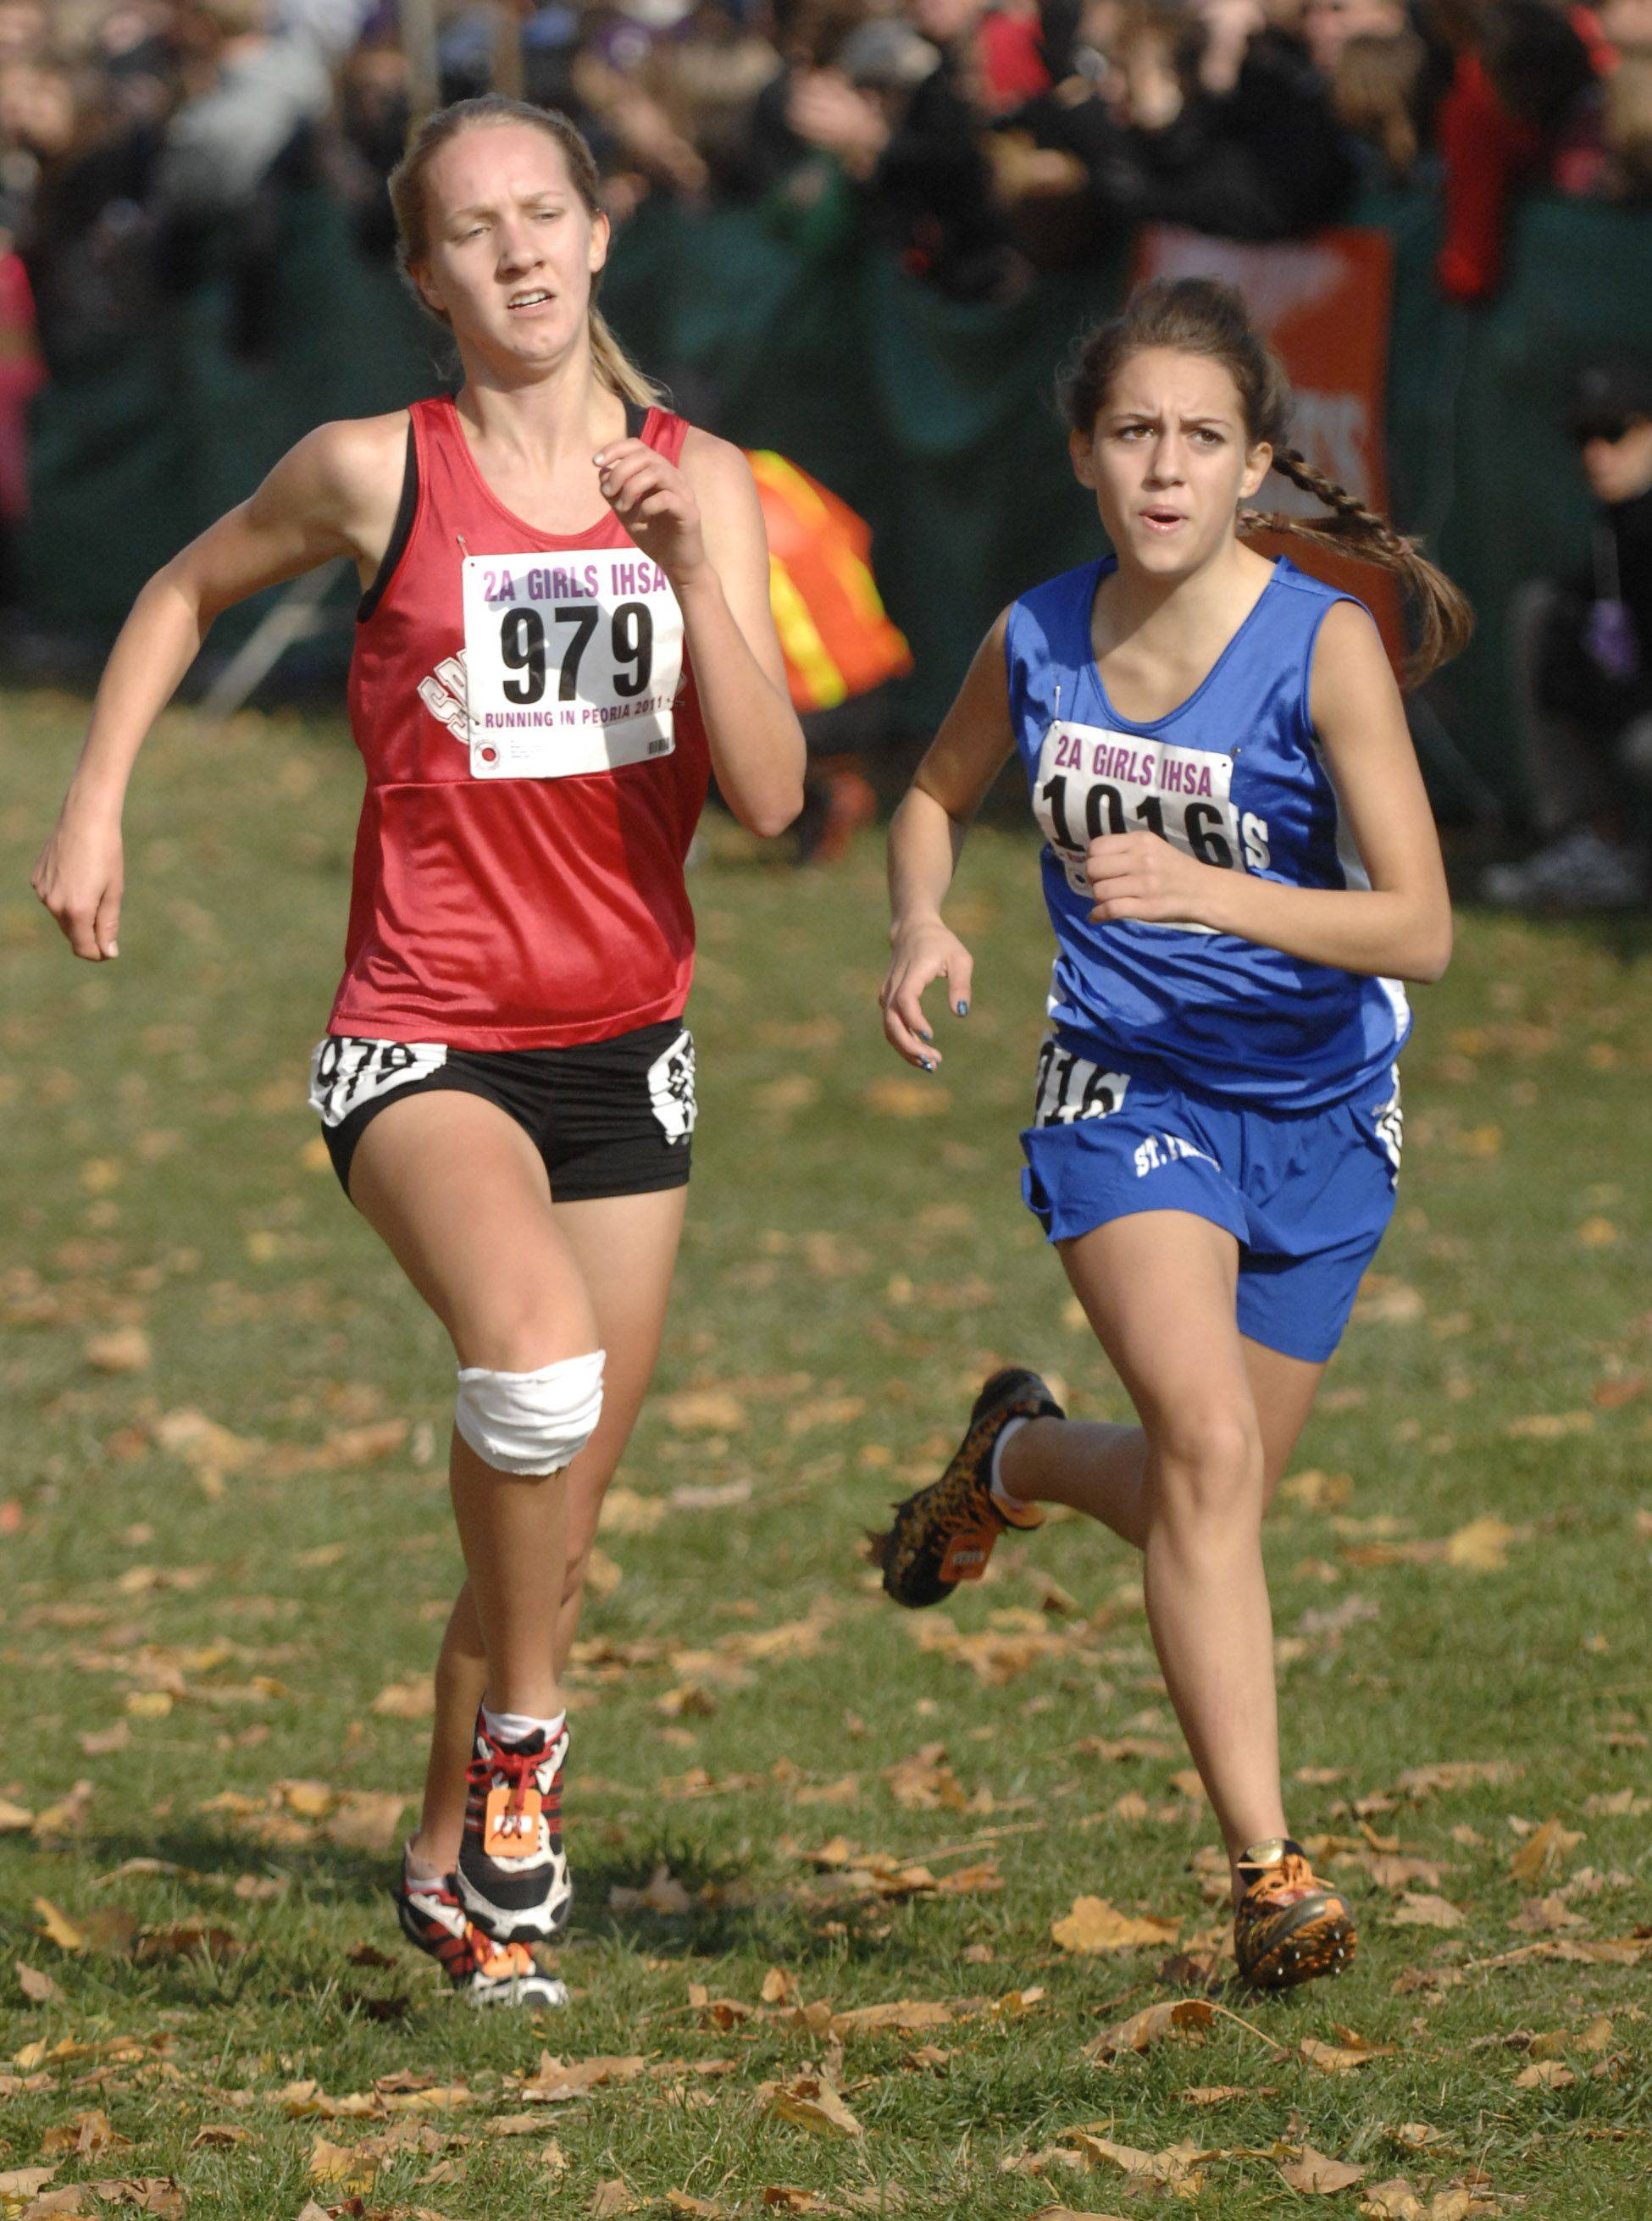 St. Francis' Jenna DiValerio gives one last sprint to get past Springfield's Maggie Cornelius near the finish line in the 2A state cross country final. DiValerio finished with a time of 18:16 in 32nd place.